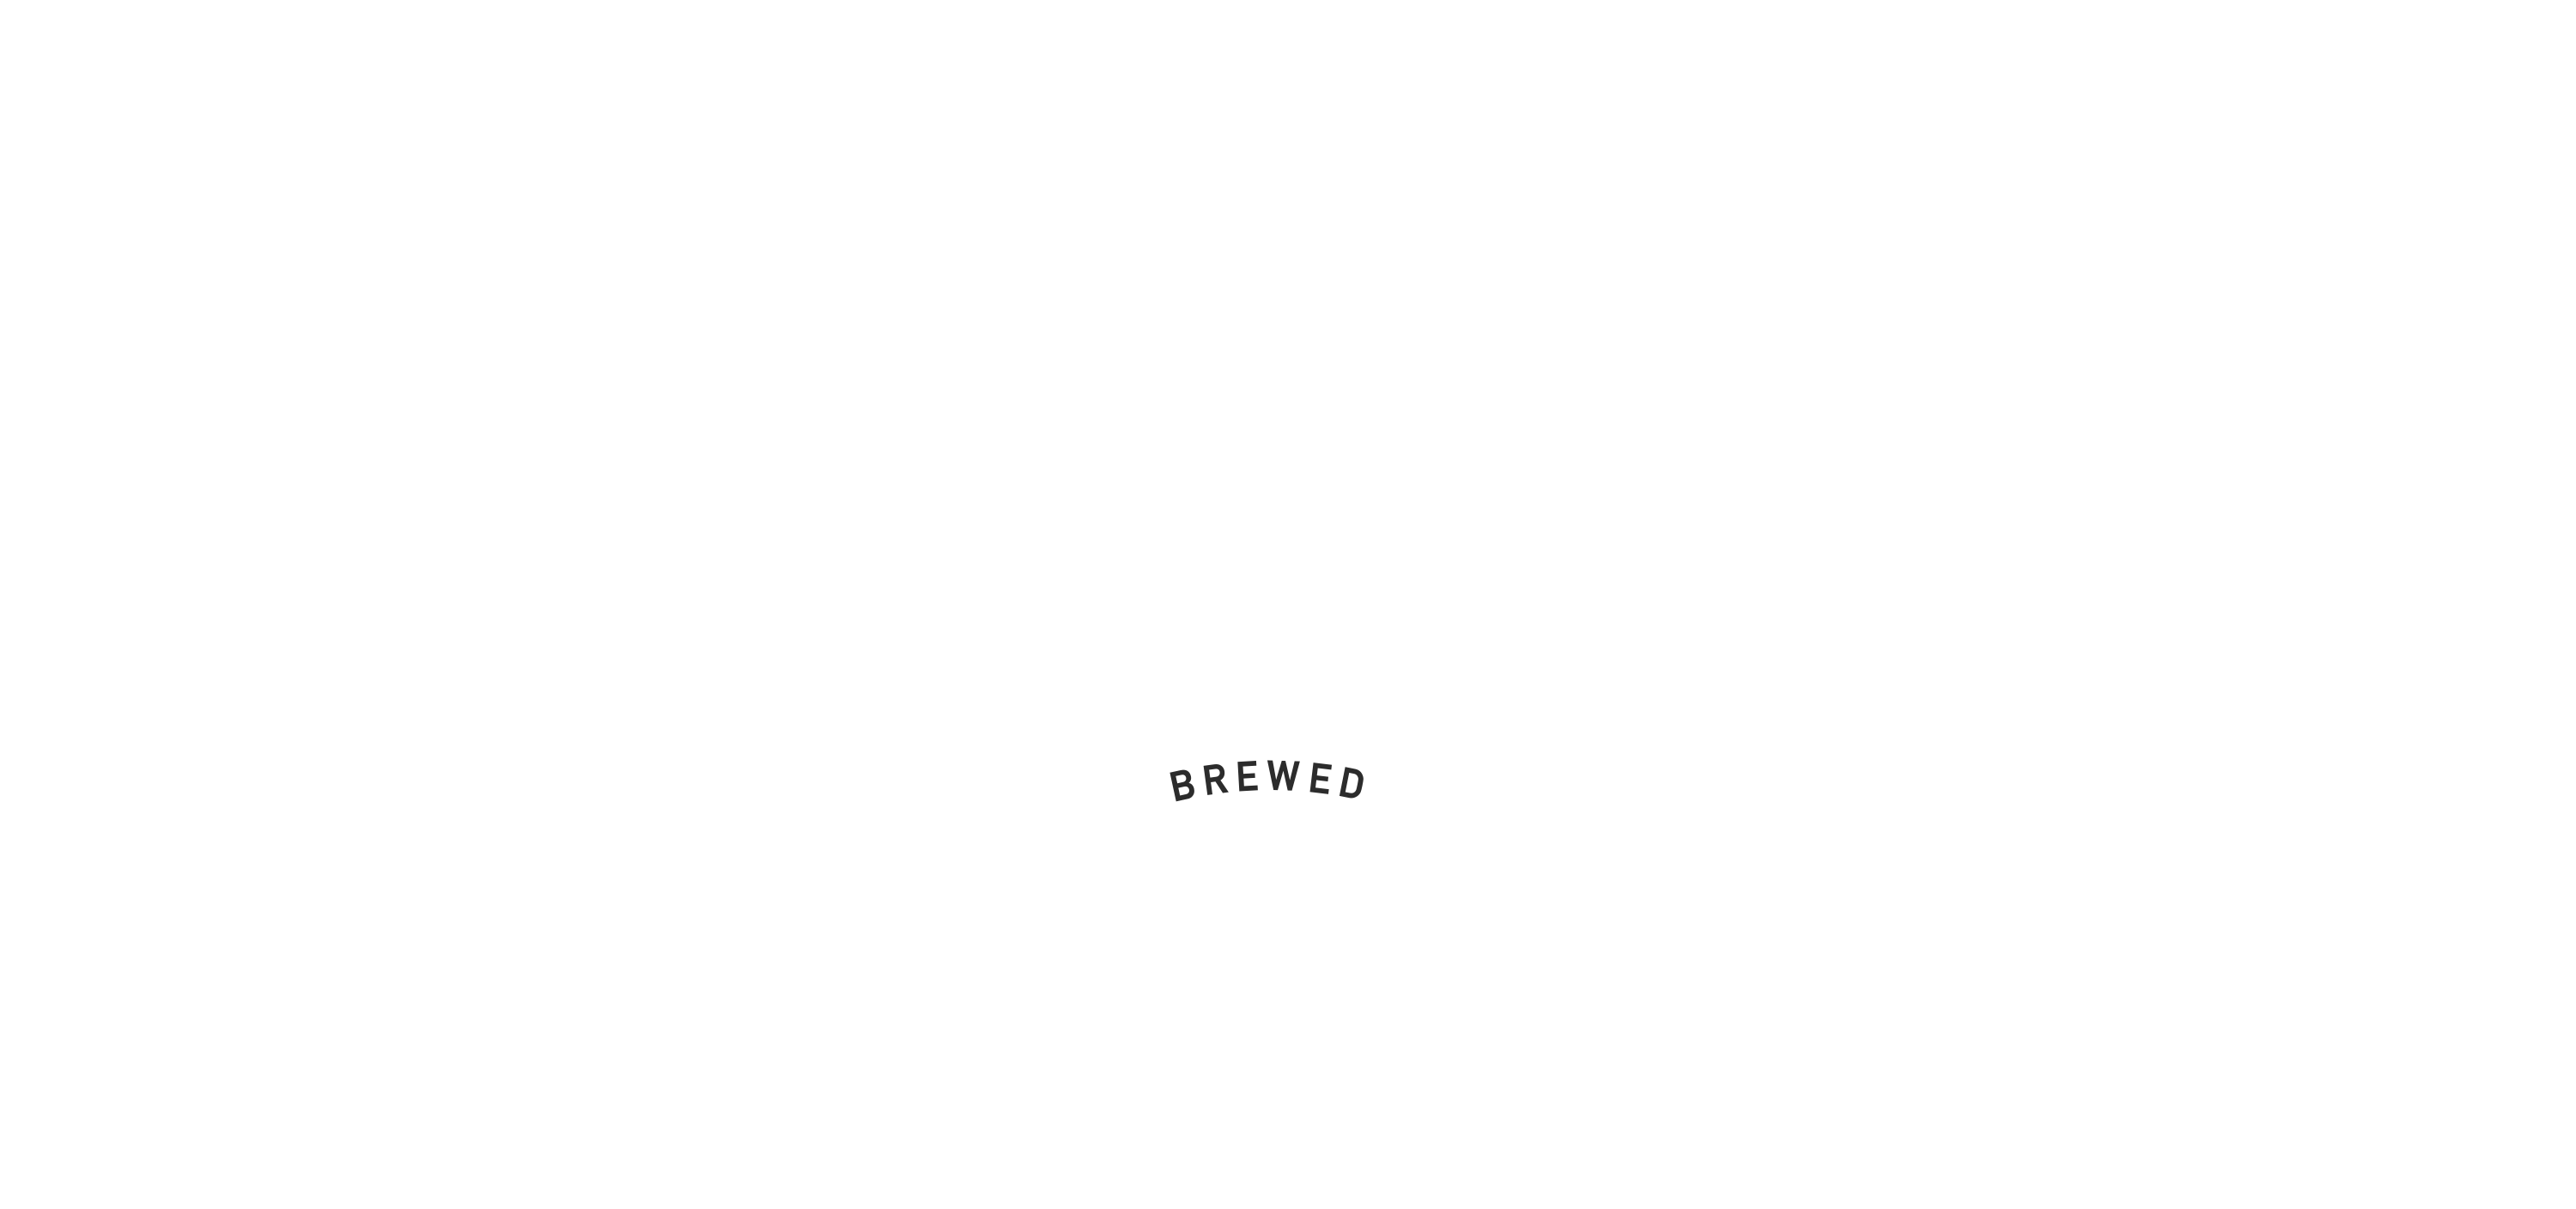 https://linecreekbrewing.com/wp-content/uploads/2017/09/peachtree-city-first-brewery-1-1.png